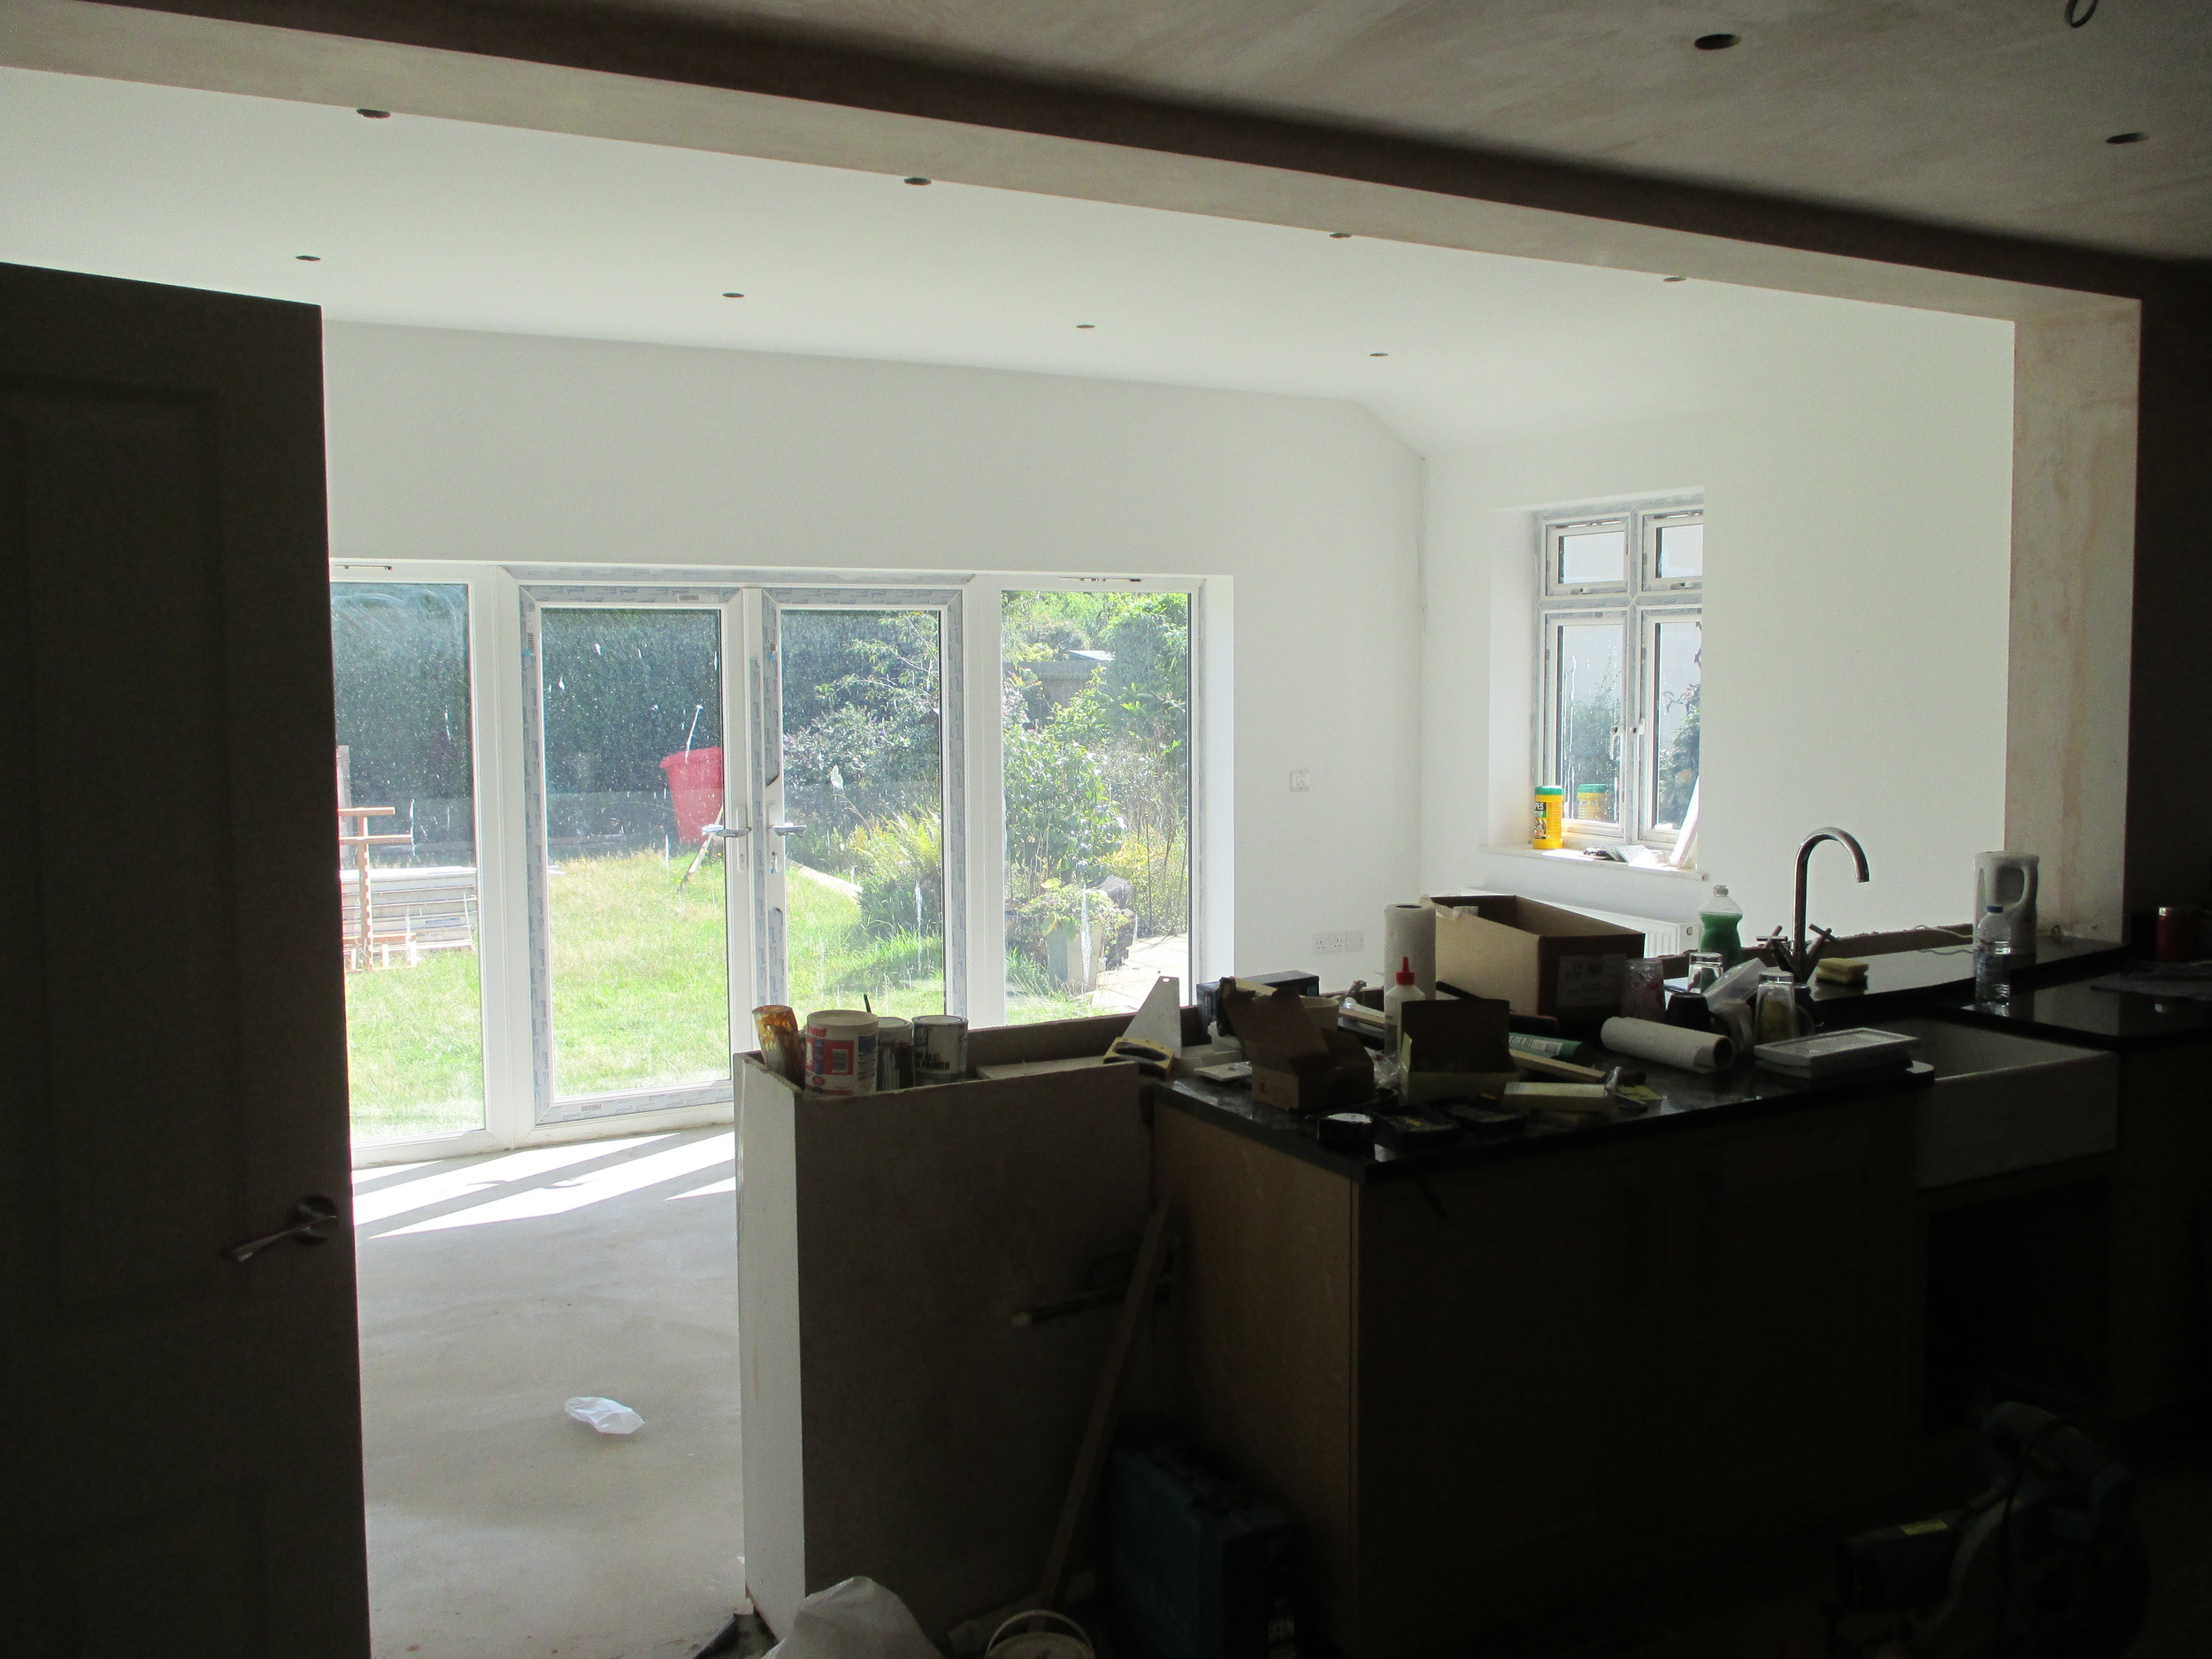 Conversion in Progress - Old kitchen now opening into new breakfast / garden room